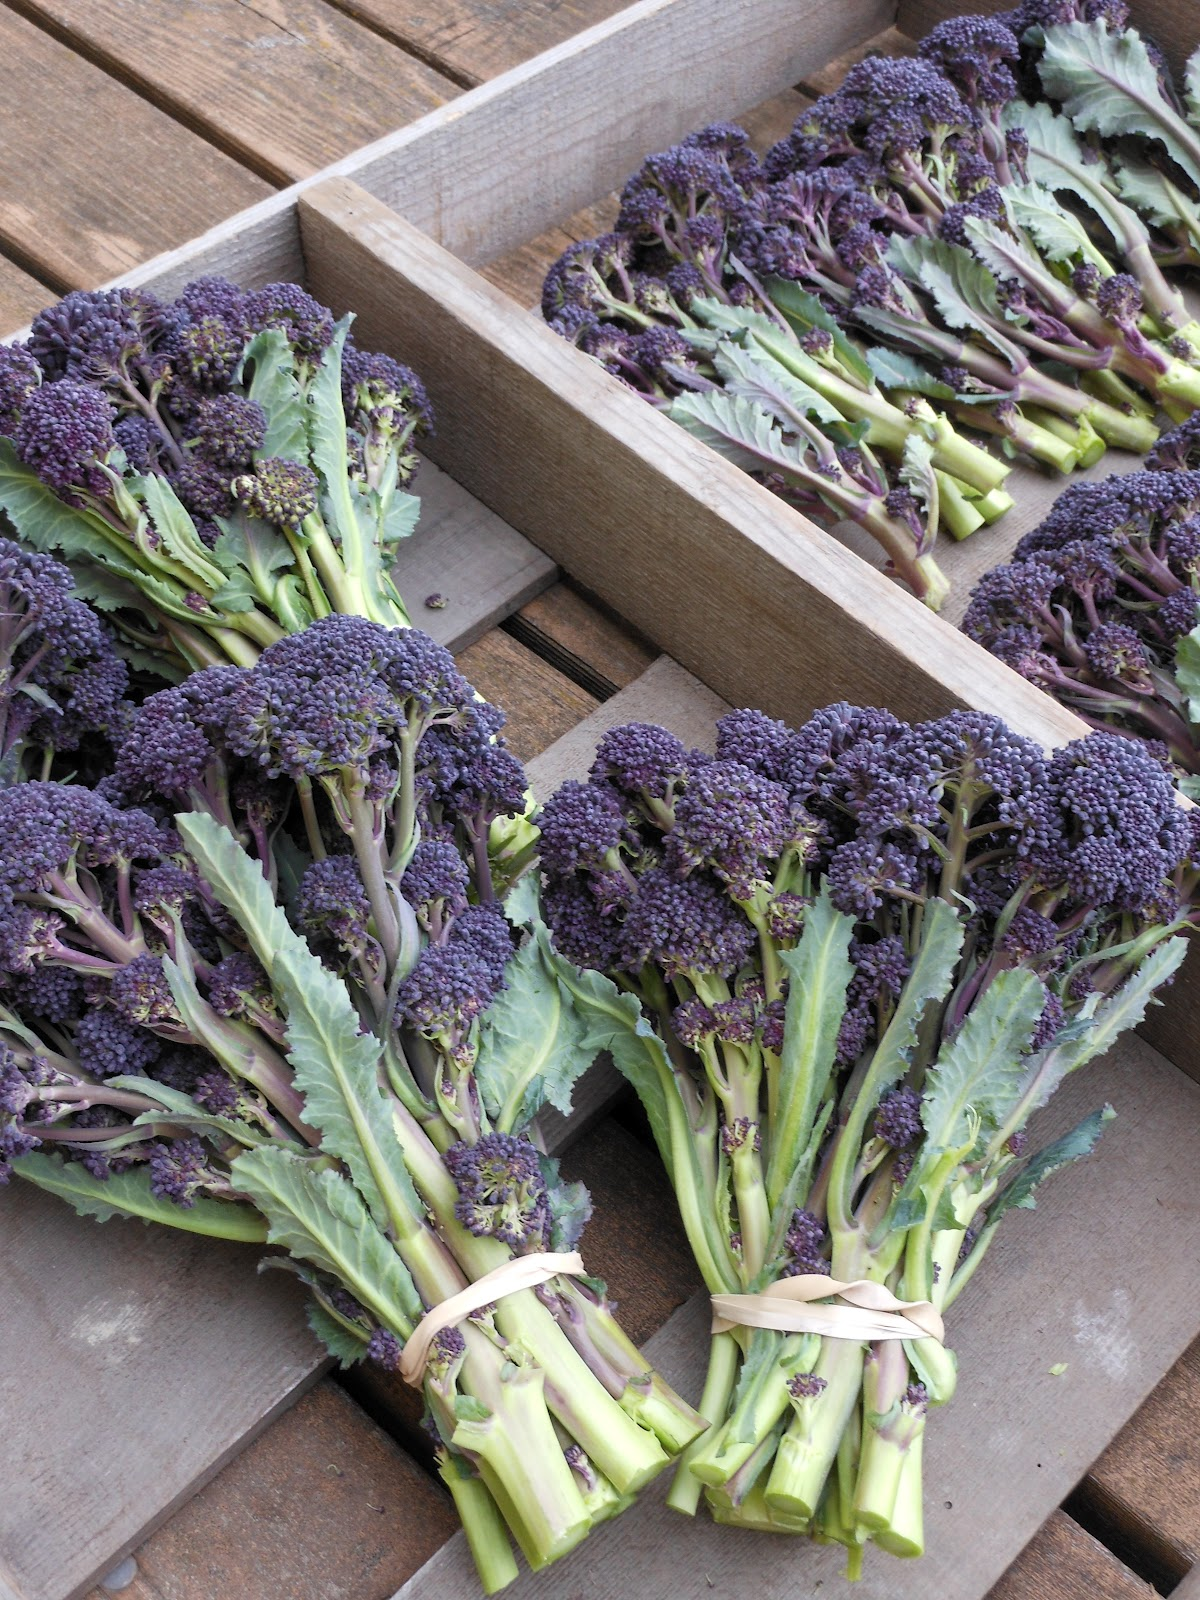 Overwinter Purple Sprouting Broccoli seeds available! | Osborne Seed Company Variety Trials